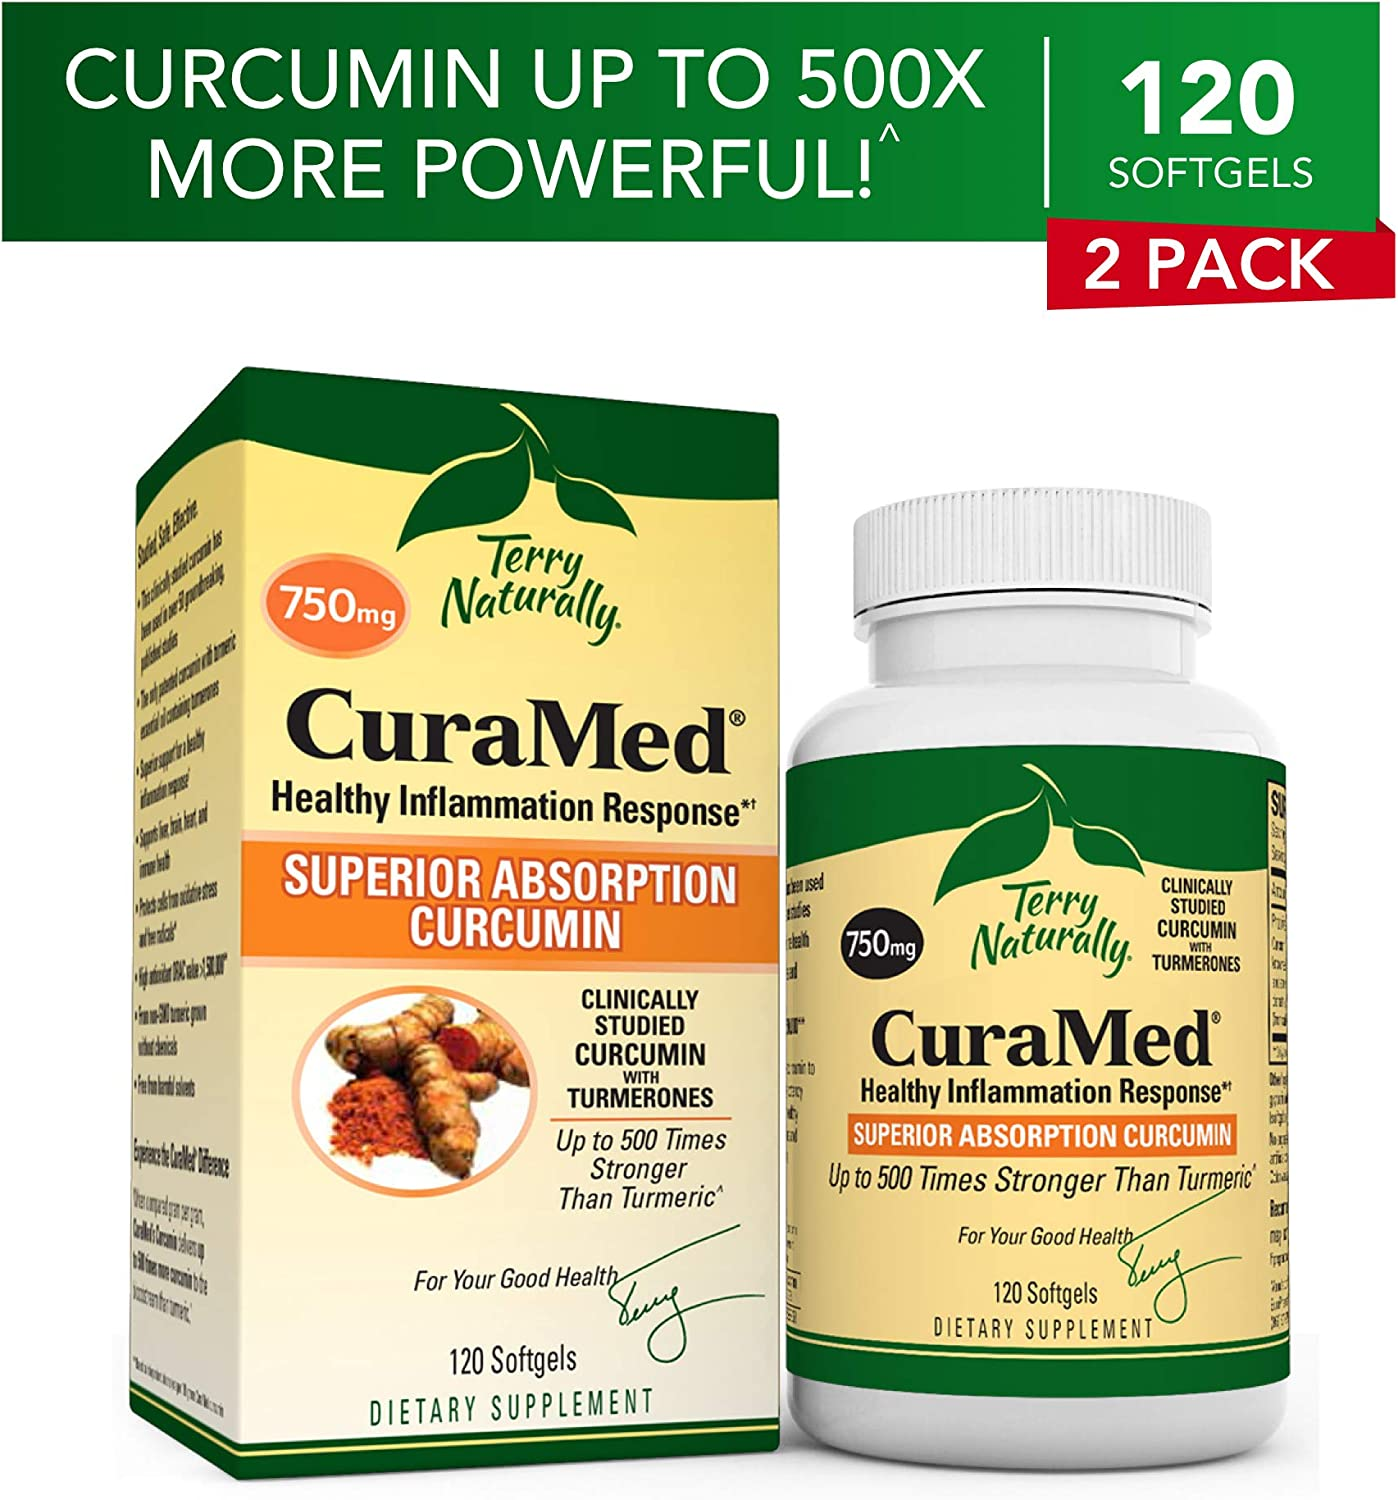 Terry Naturally CuraMed 750 mg 2 Pack – 120 Softgels – Superior Absorption BCM-95 Curcumin Supplement, Promotes Healthy Inflammation Response – Non-GMO, Gluten-Free, Halal – 240 Total Servings